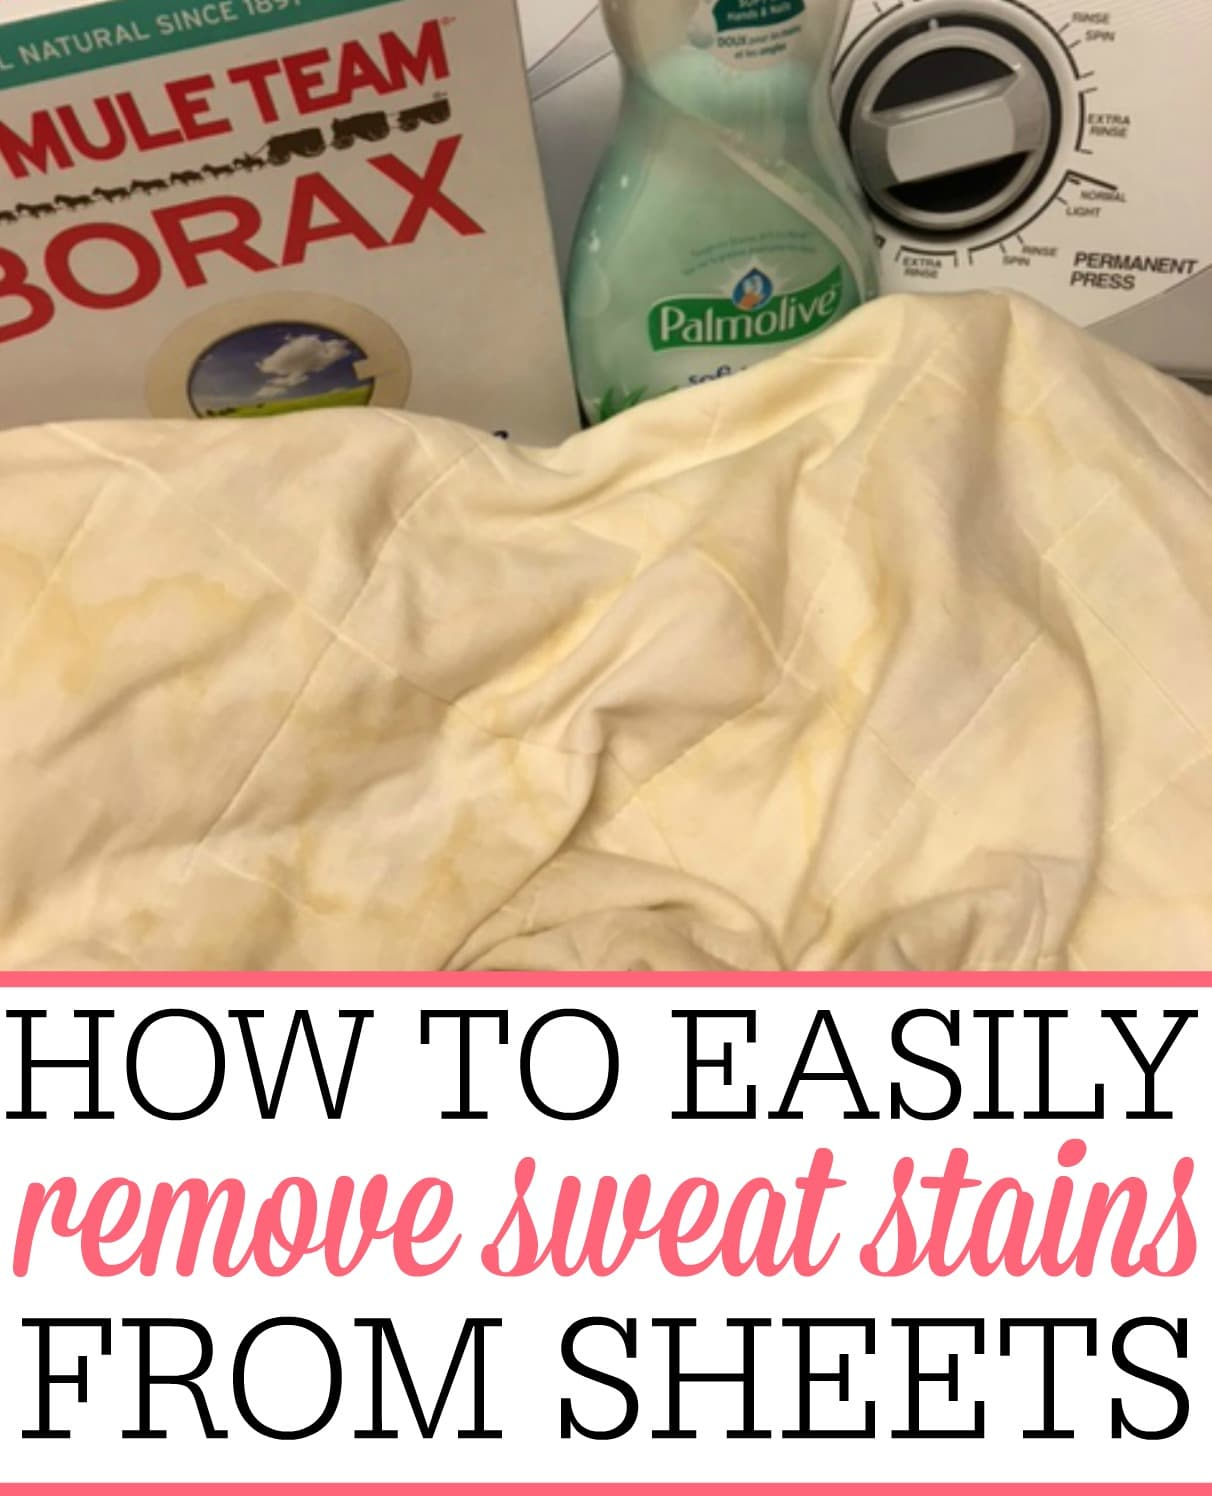 How to easily remove sweat stains from sheets blankets frugally blonde - Coffee stains oil stains get rid easily ...